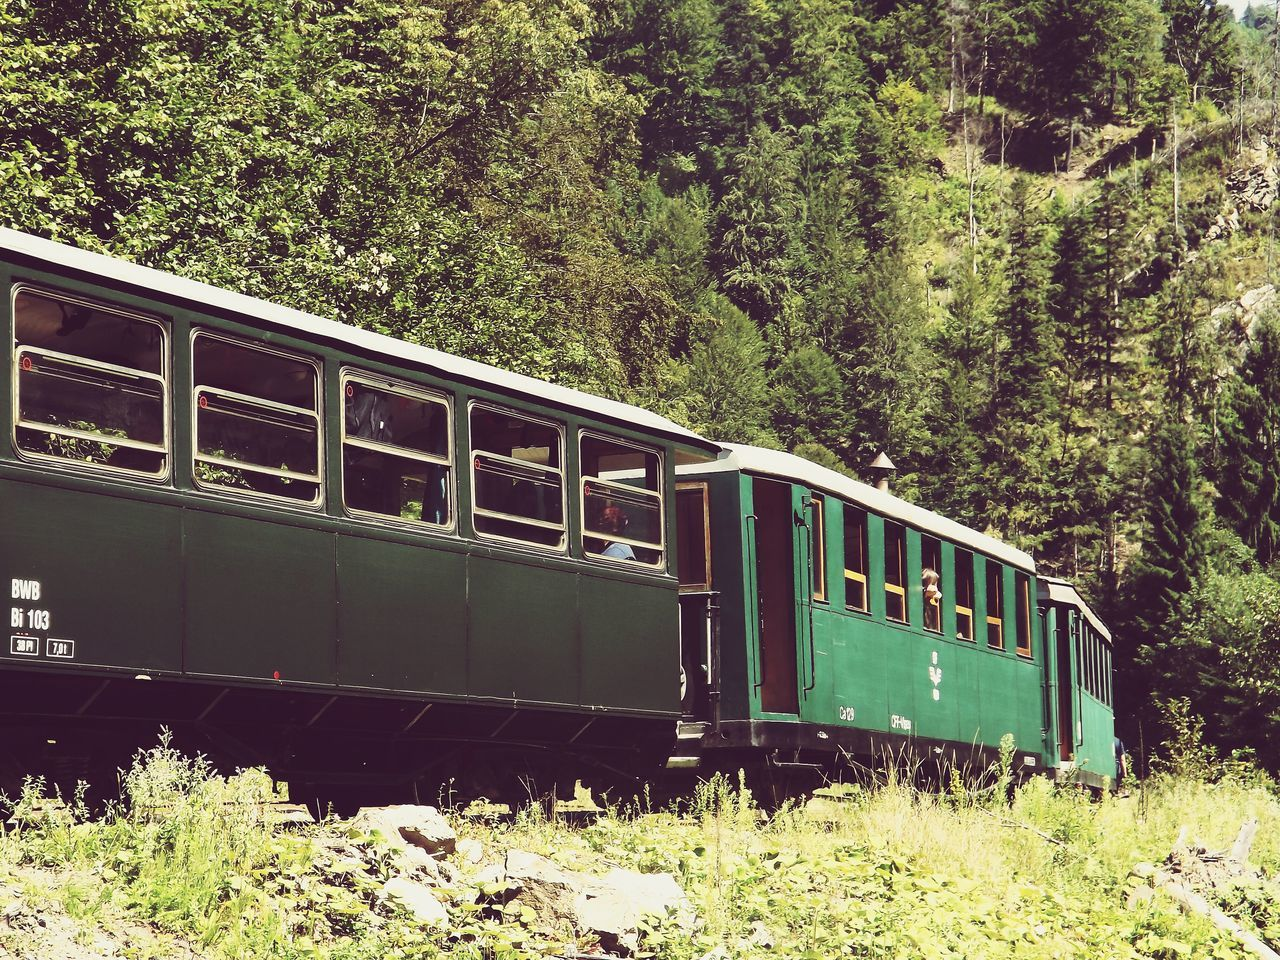 Train Old Train Transportation Train - Vehicle Rail Transportation Trainwagon Train Wagon Train In The Forest Train In The Mountains